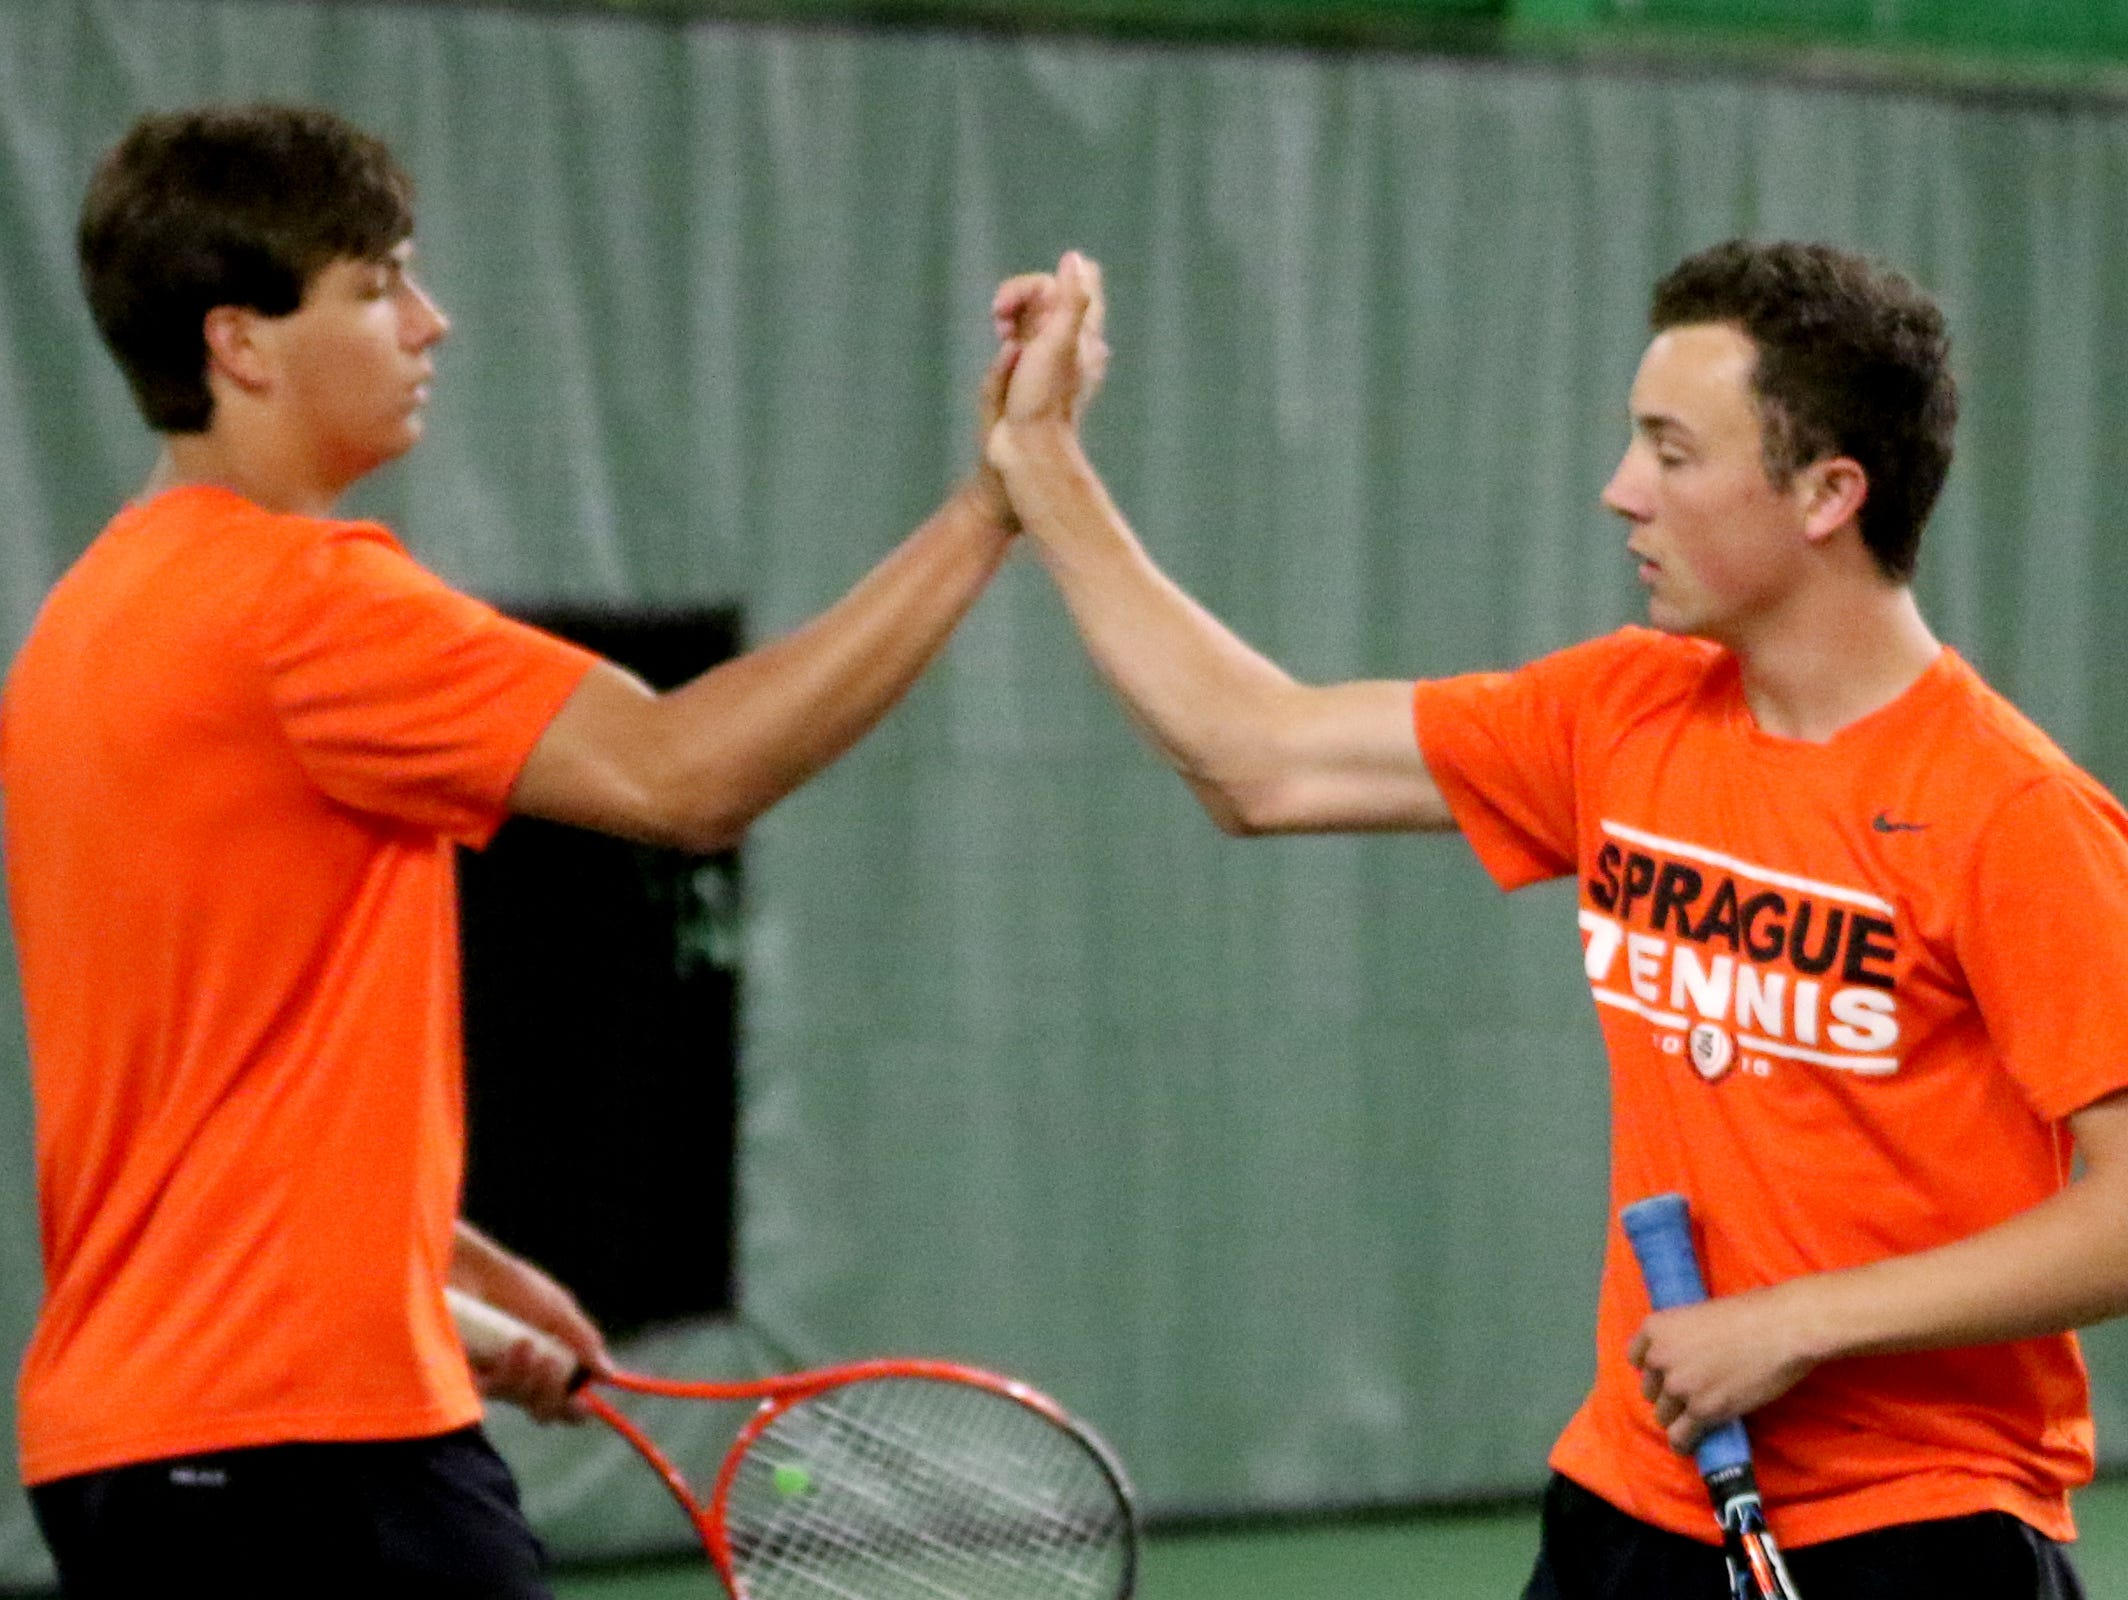 Sprague's Nate Harder, left, and Jonah Lovell high-five while competing as a doubles pair in the Sprague vs. McKay boy's tennis meet at the Courthouse Tennis Center in Salem on Thursday, May 5, 2016.